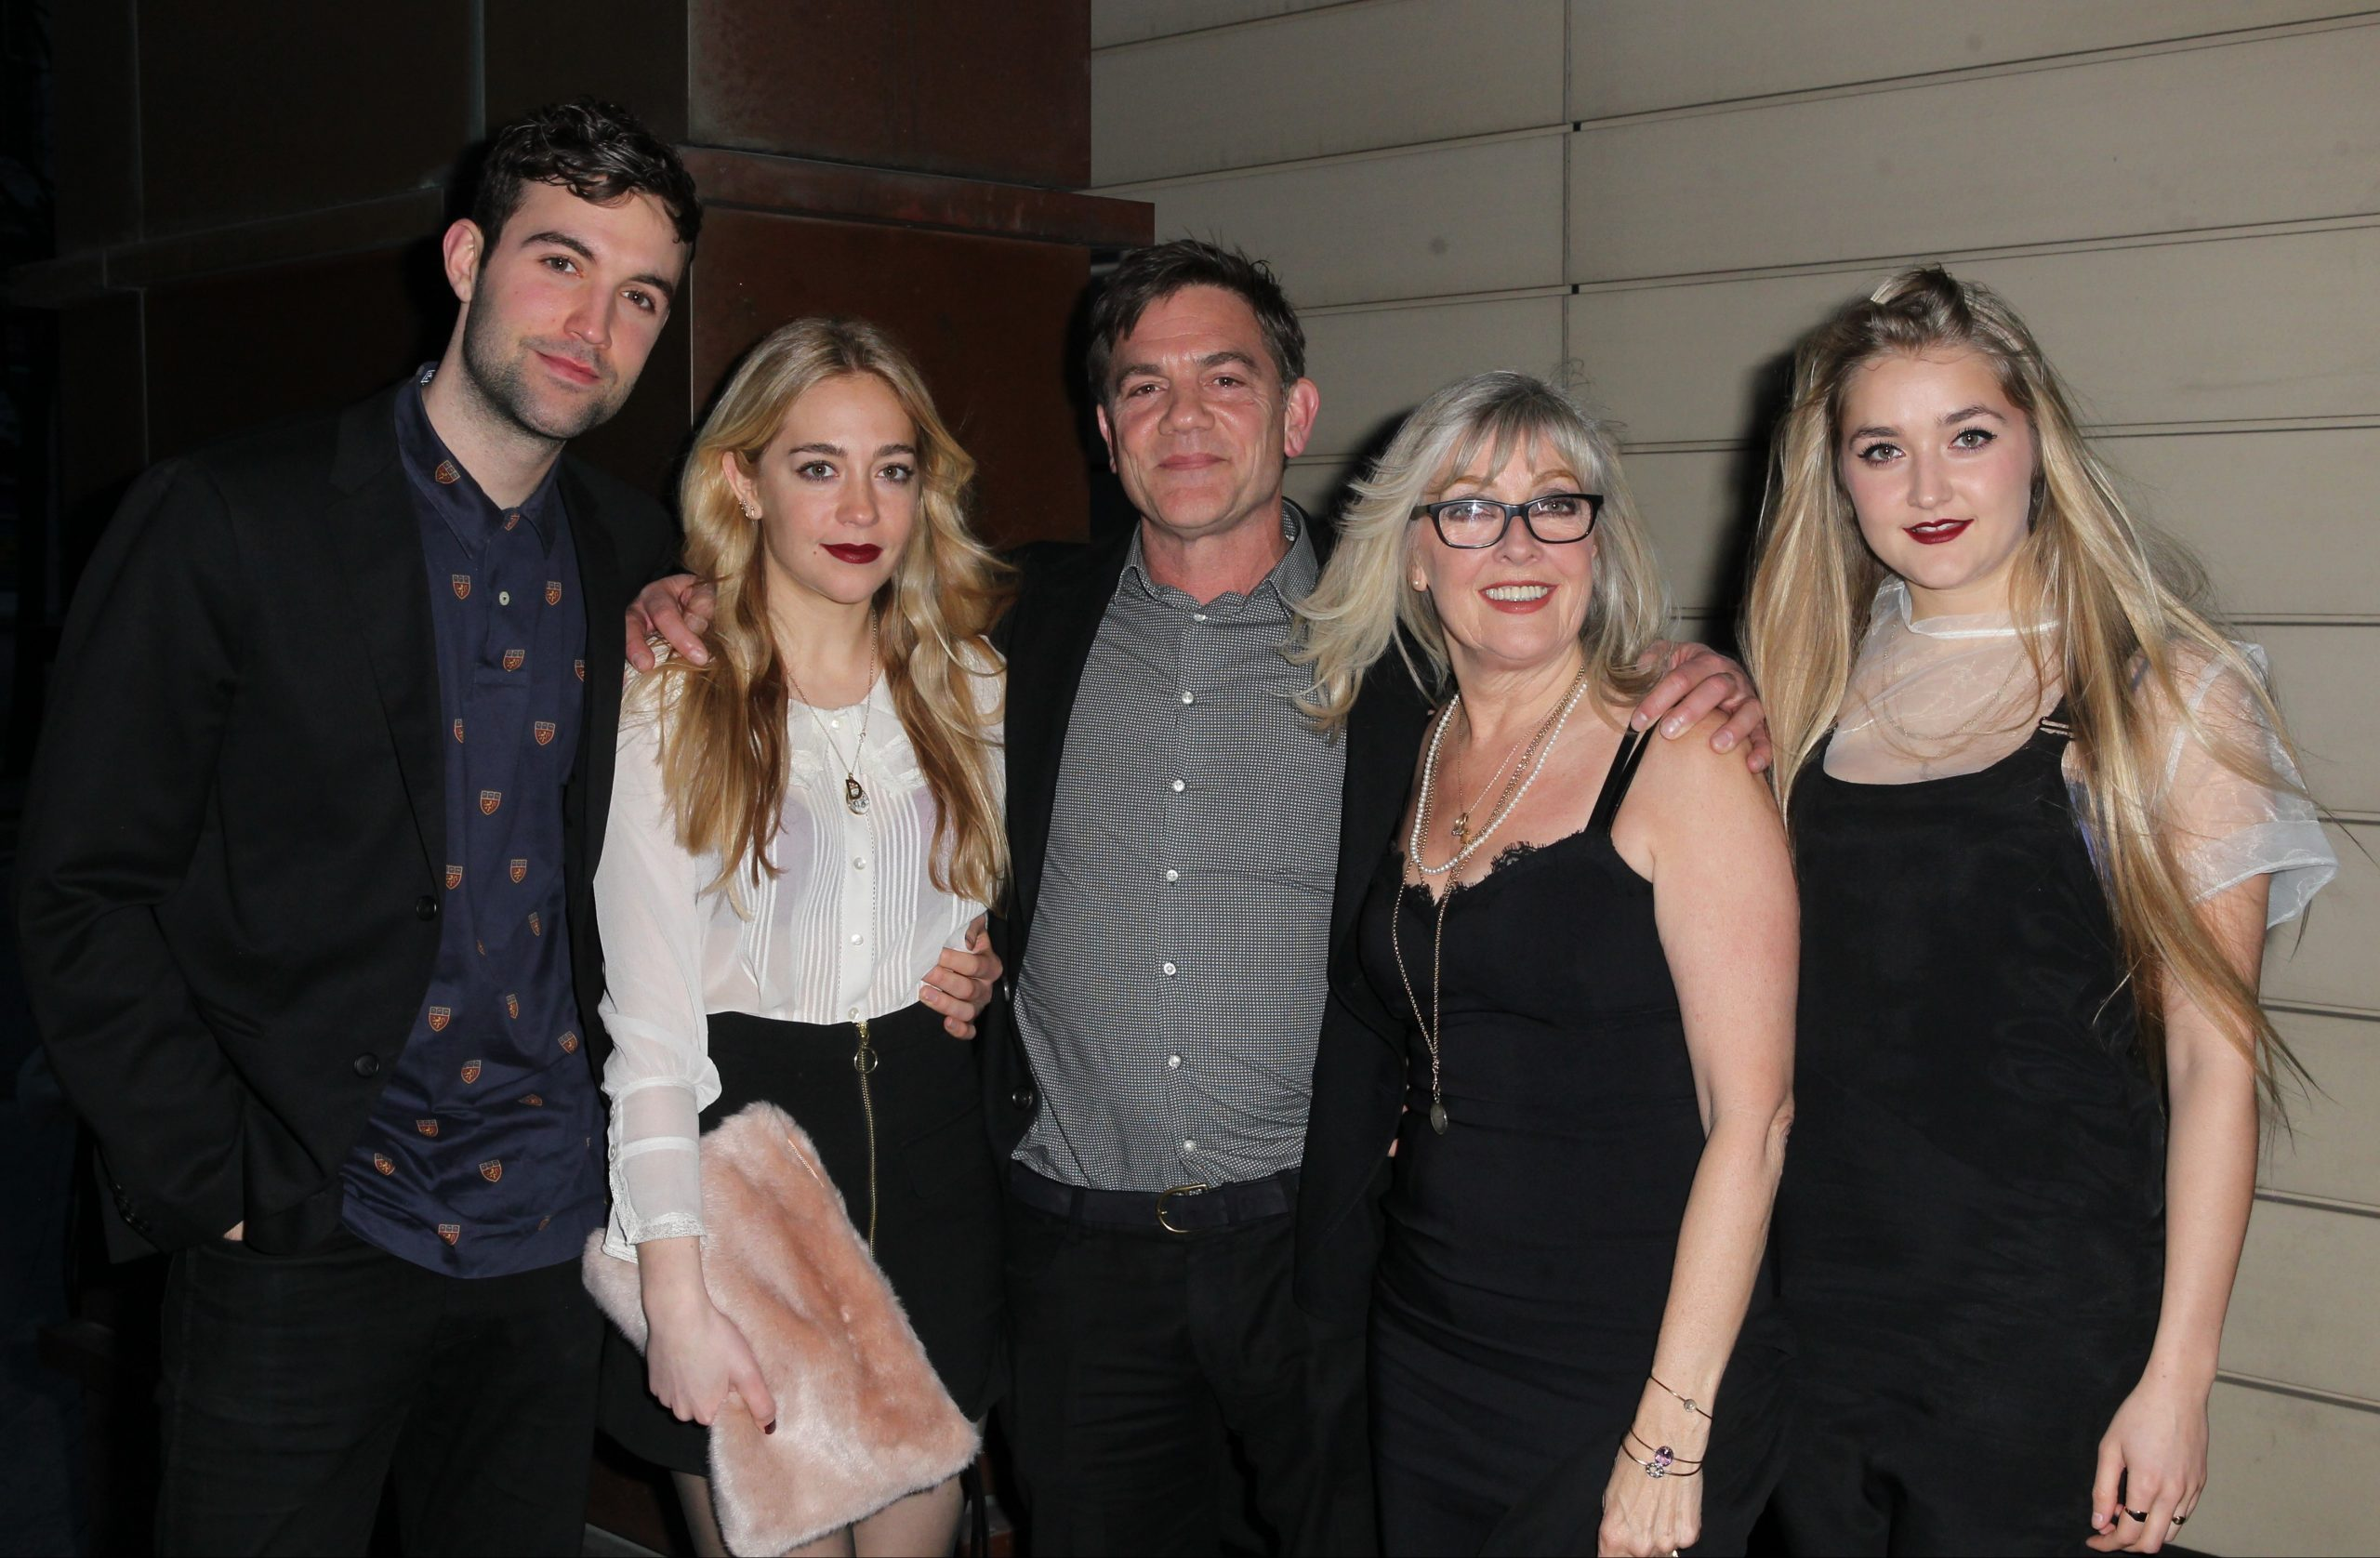 The Michie family pictured in 2015 (Credit: Splash)